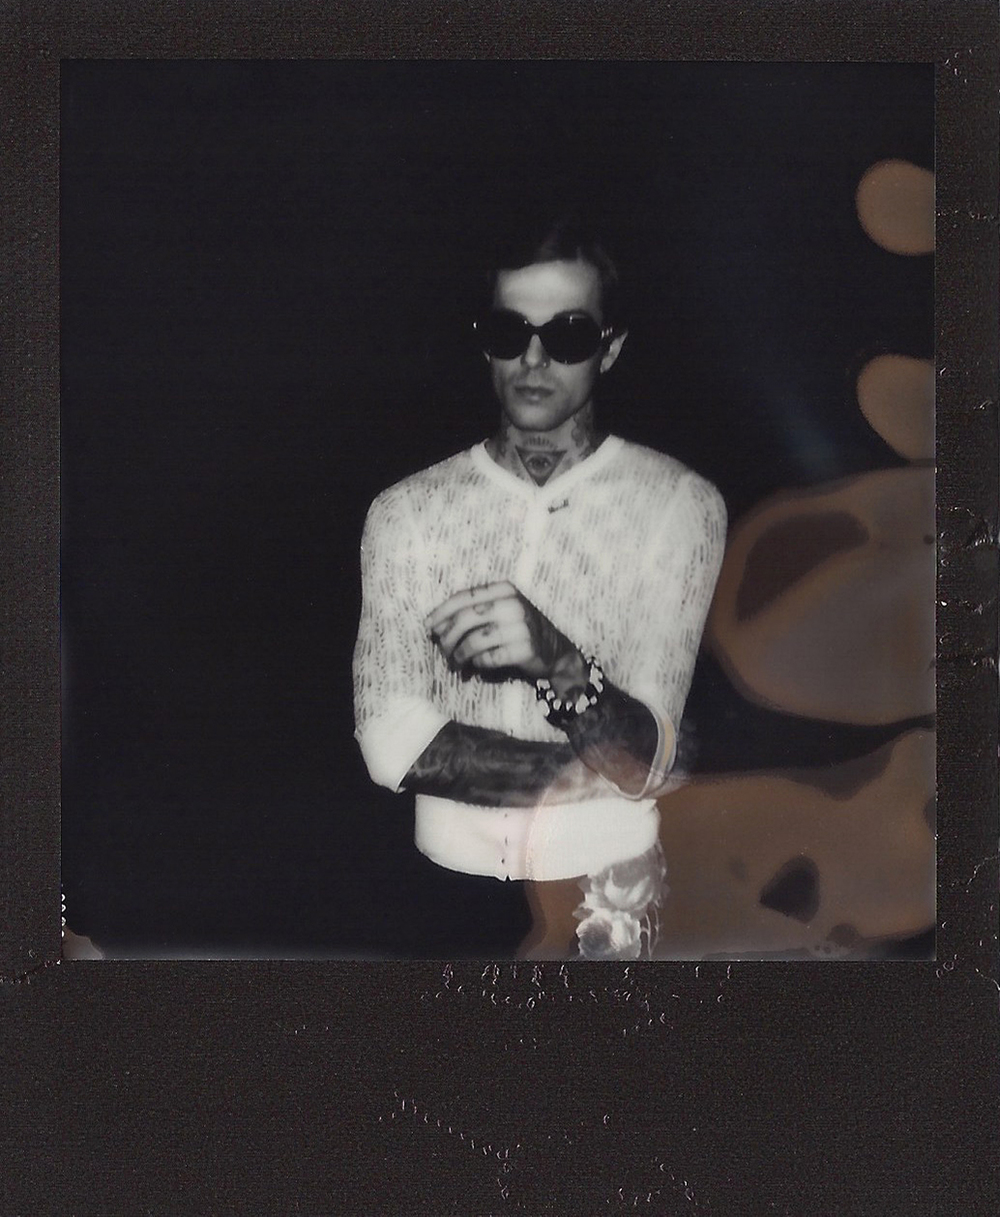 The-NBHD-Polaroid-13-casenruiz.jpg